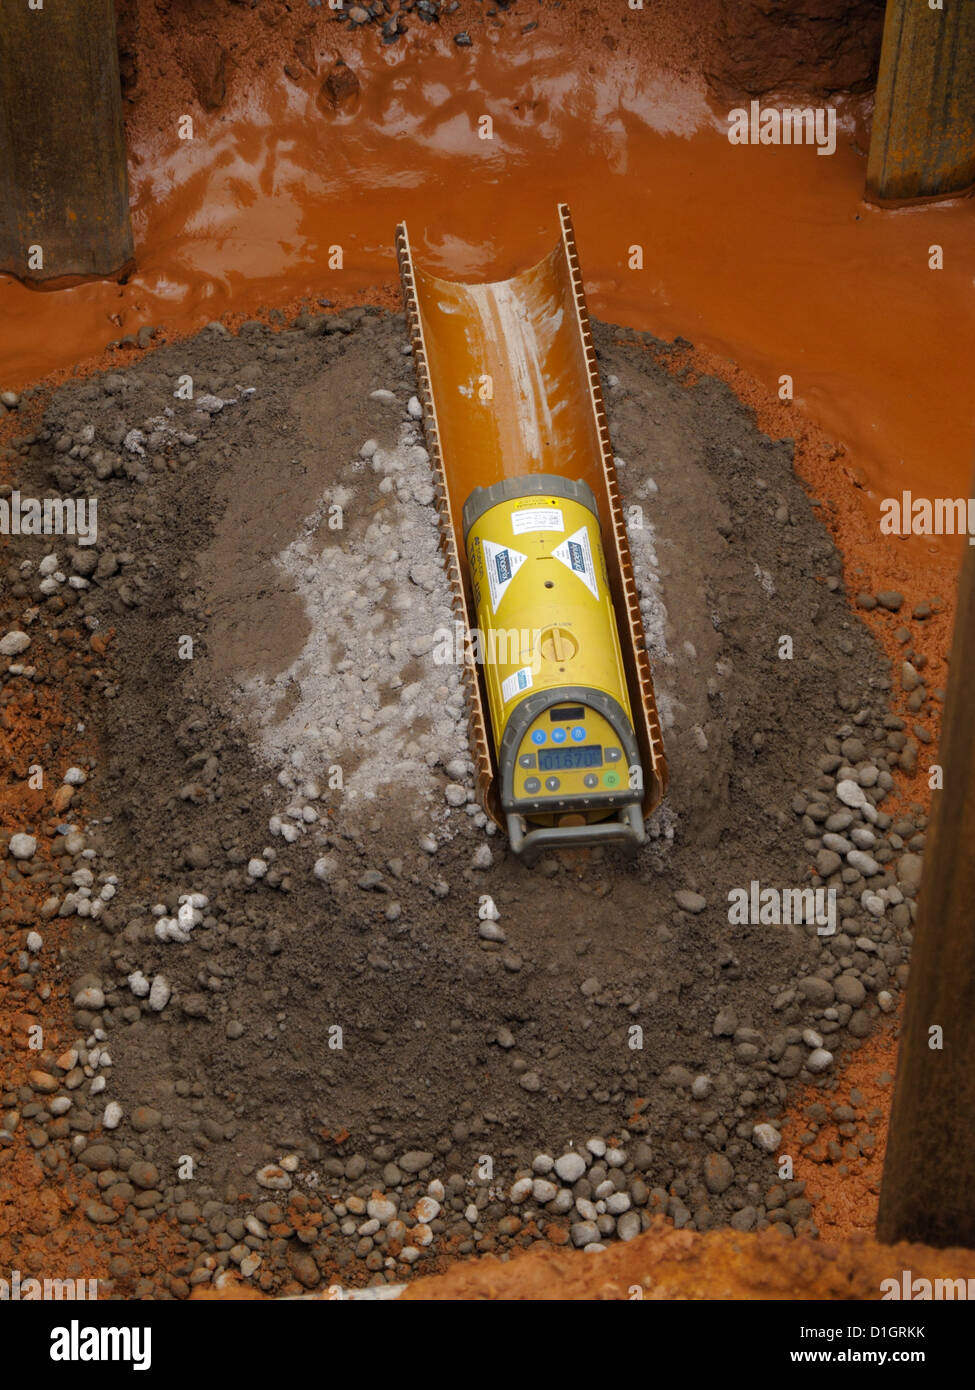 Laser pipe laying device for setting out drains in the invert of a manhole on a UK road construction site - Stock Image